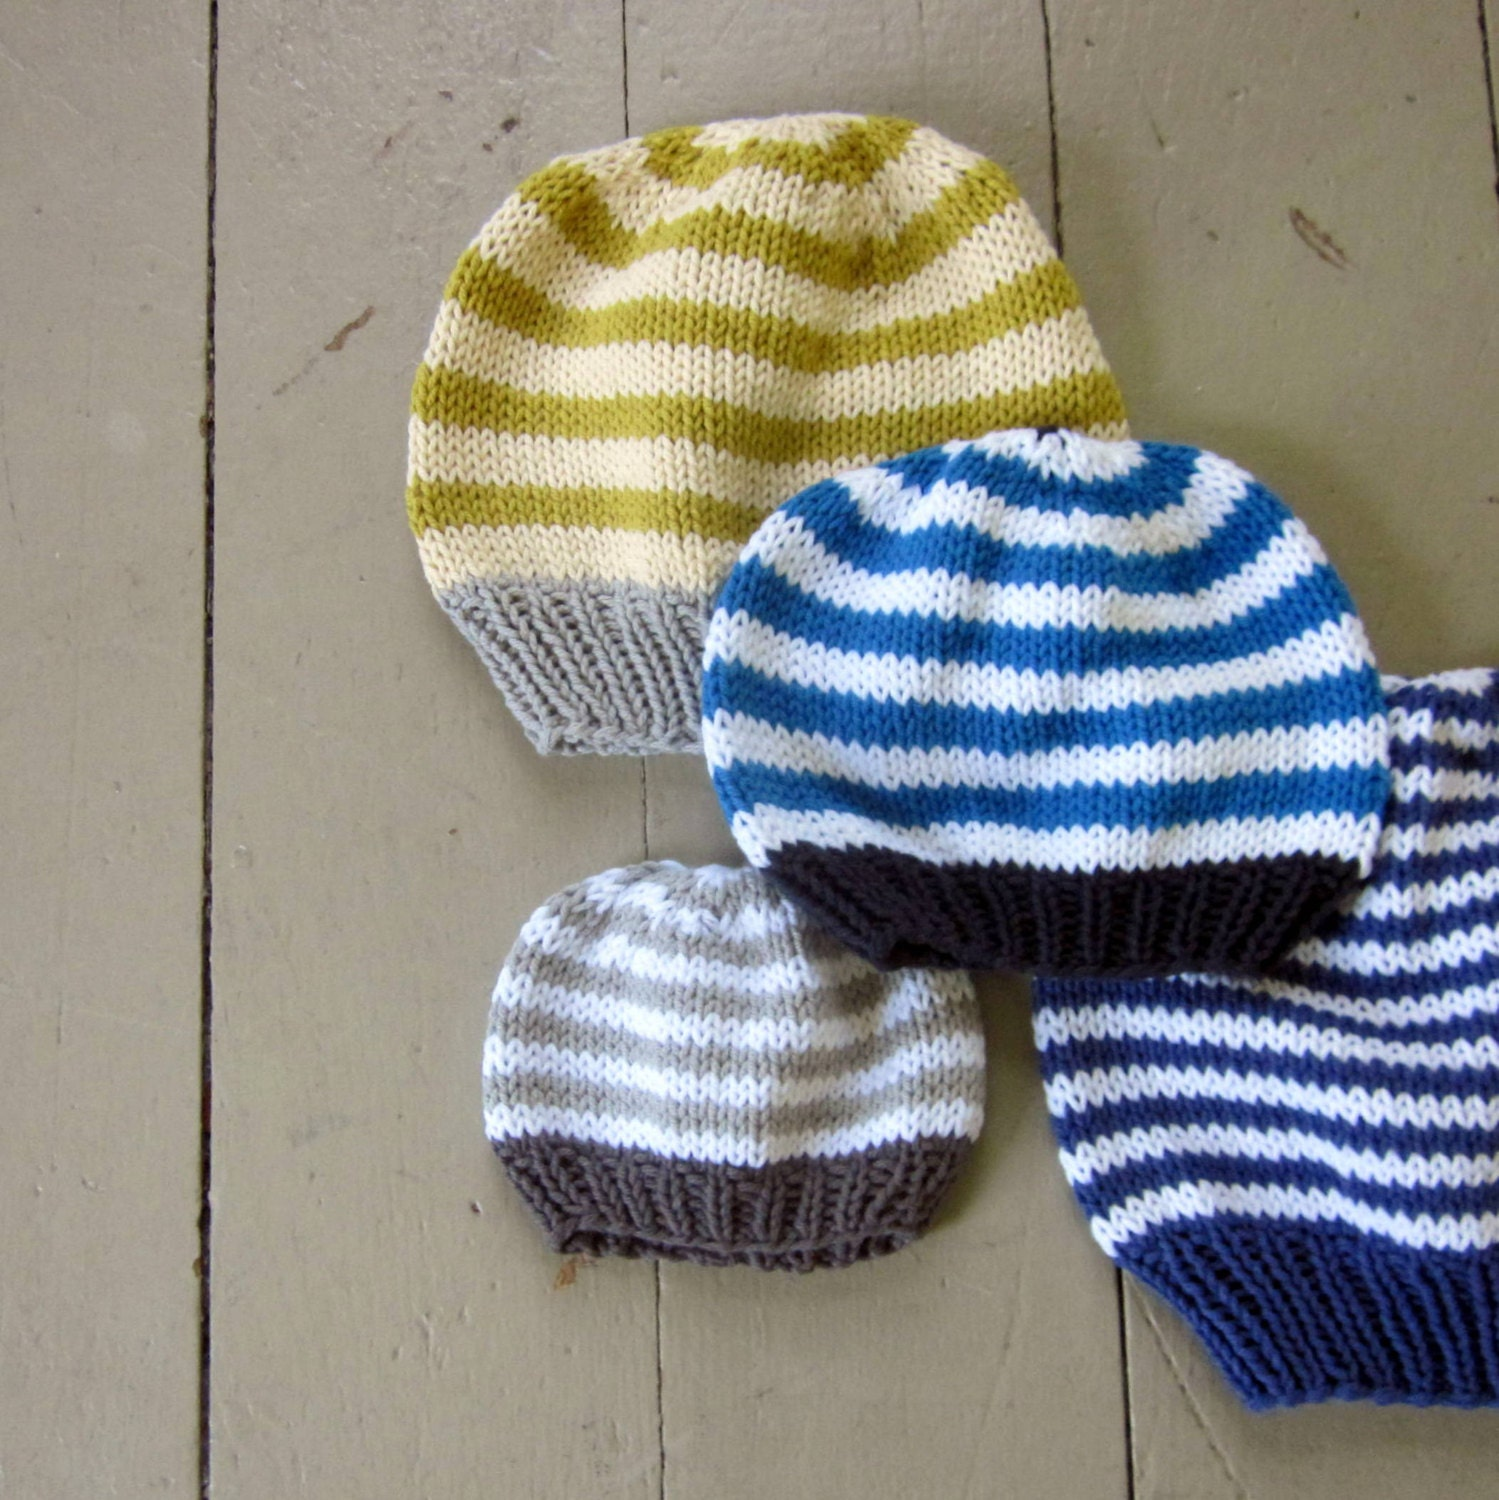 Easy Knitting Pattern For Baby Boy Hat : Pattern basic hat knitting pattern PDF knitted hat pattern: